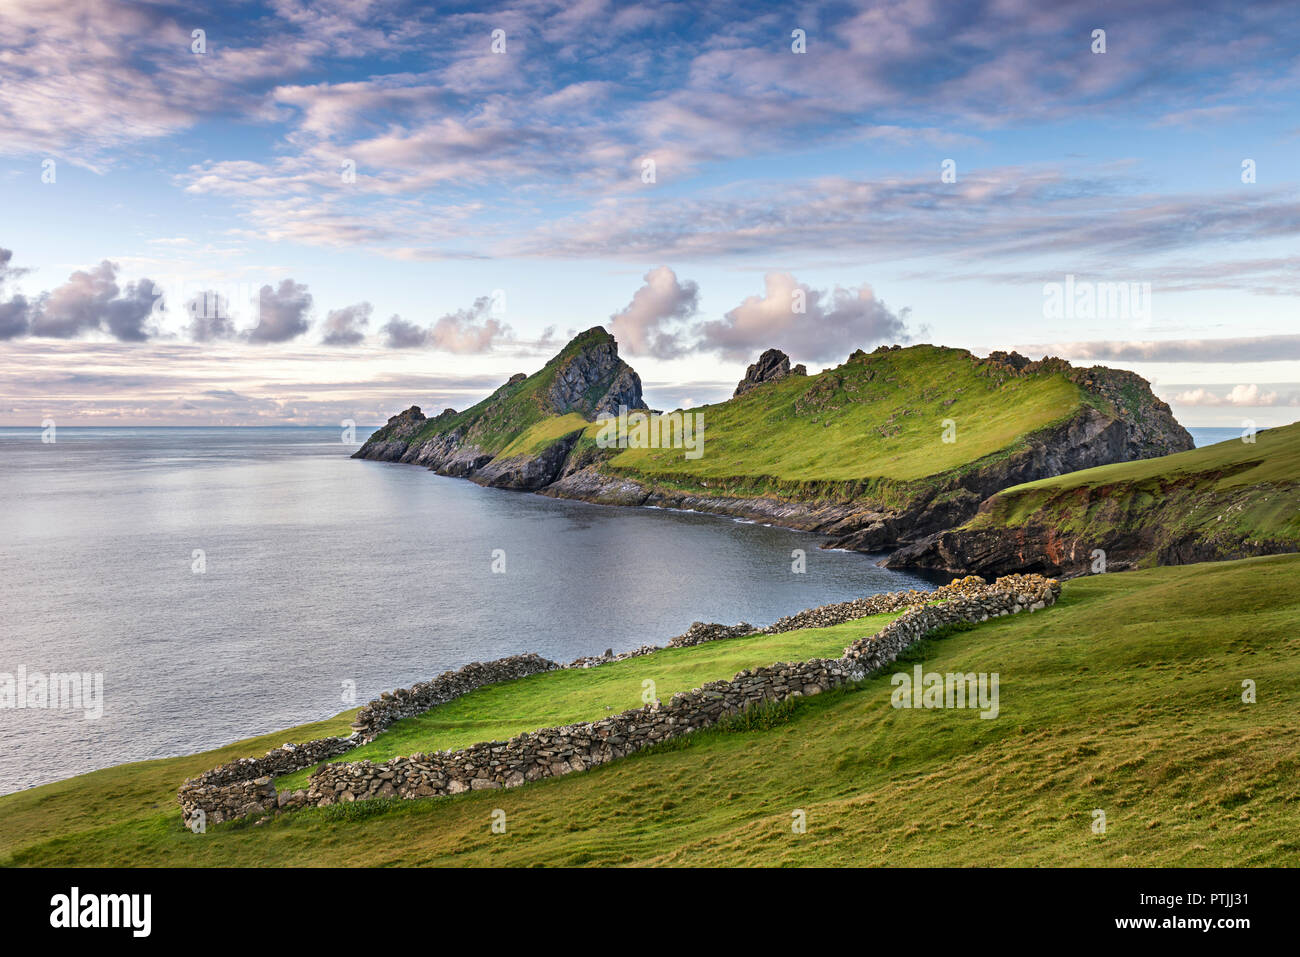 The island of Dun from Ruival on St Kilda. - Stock Image